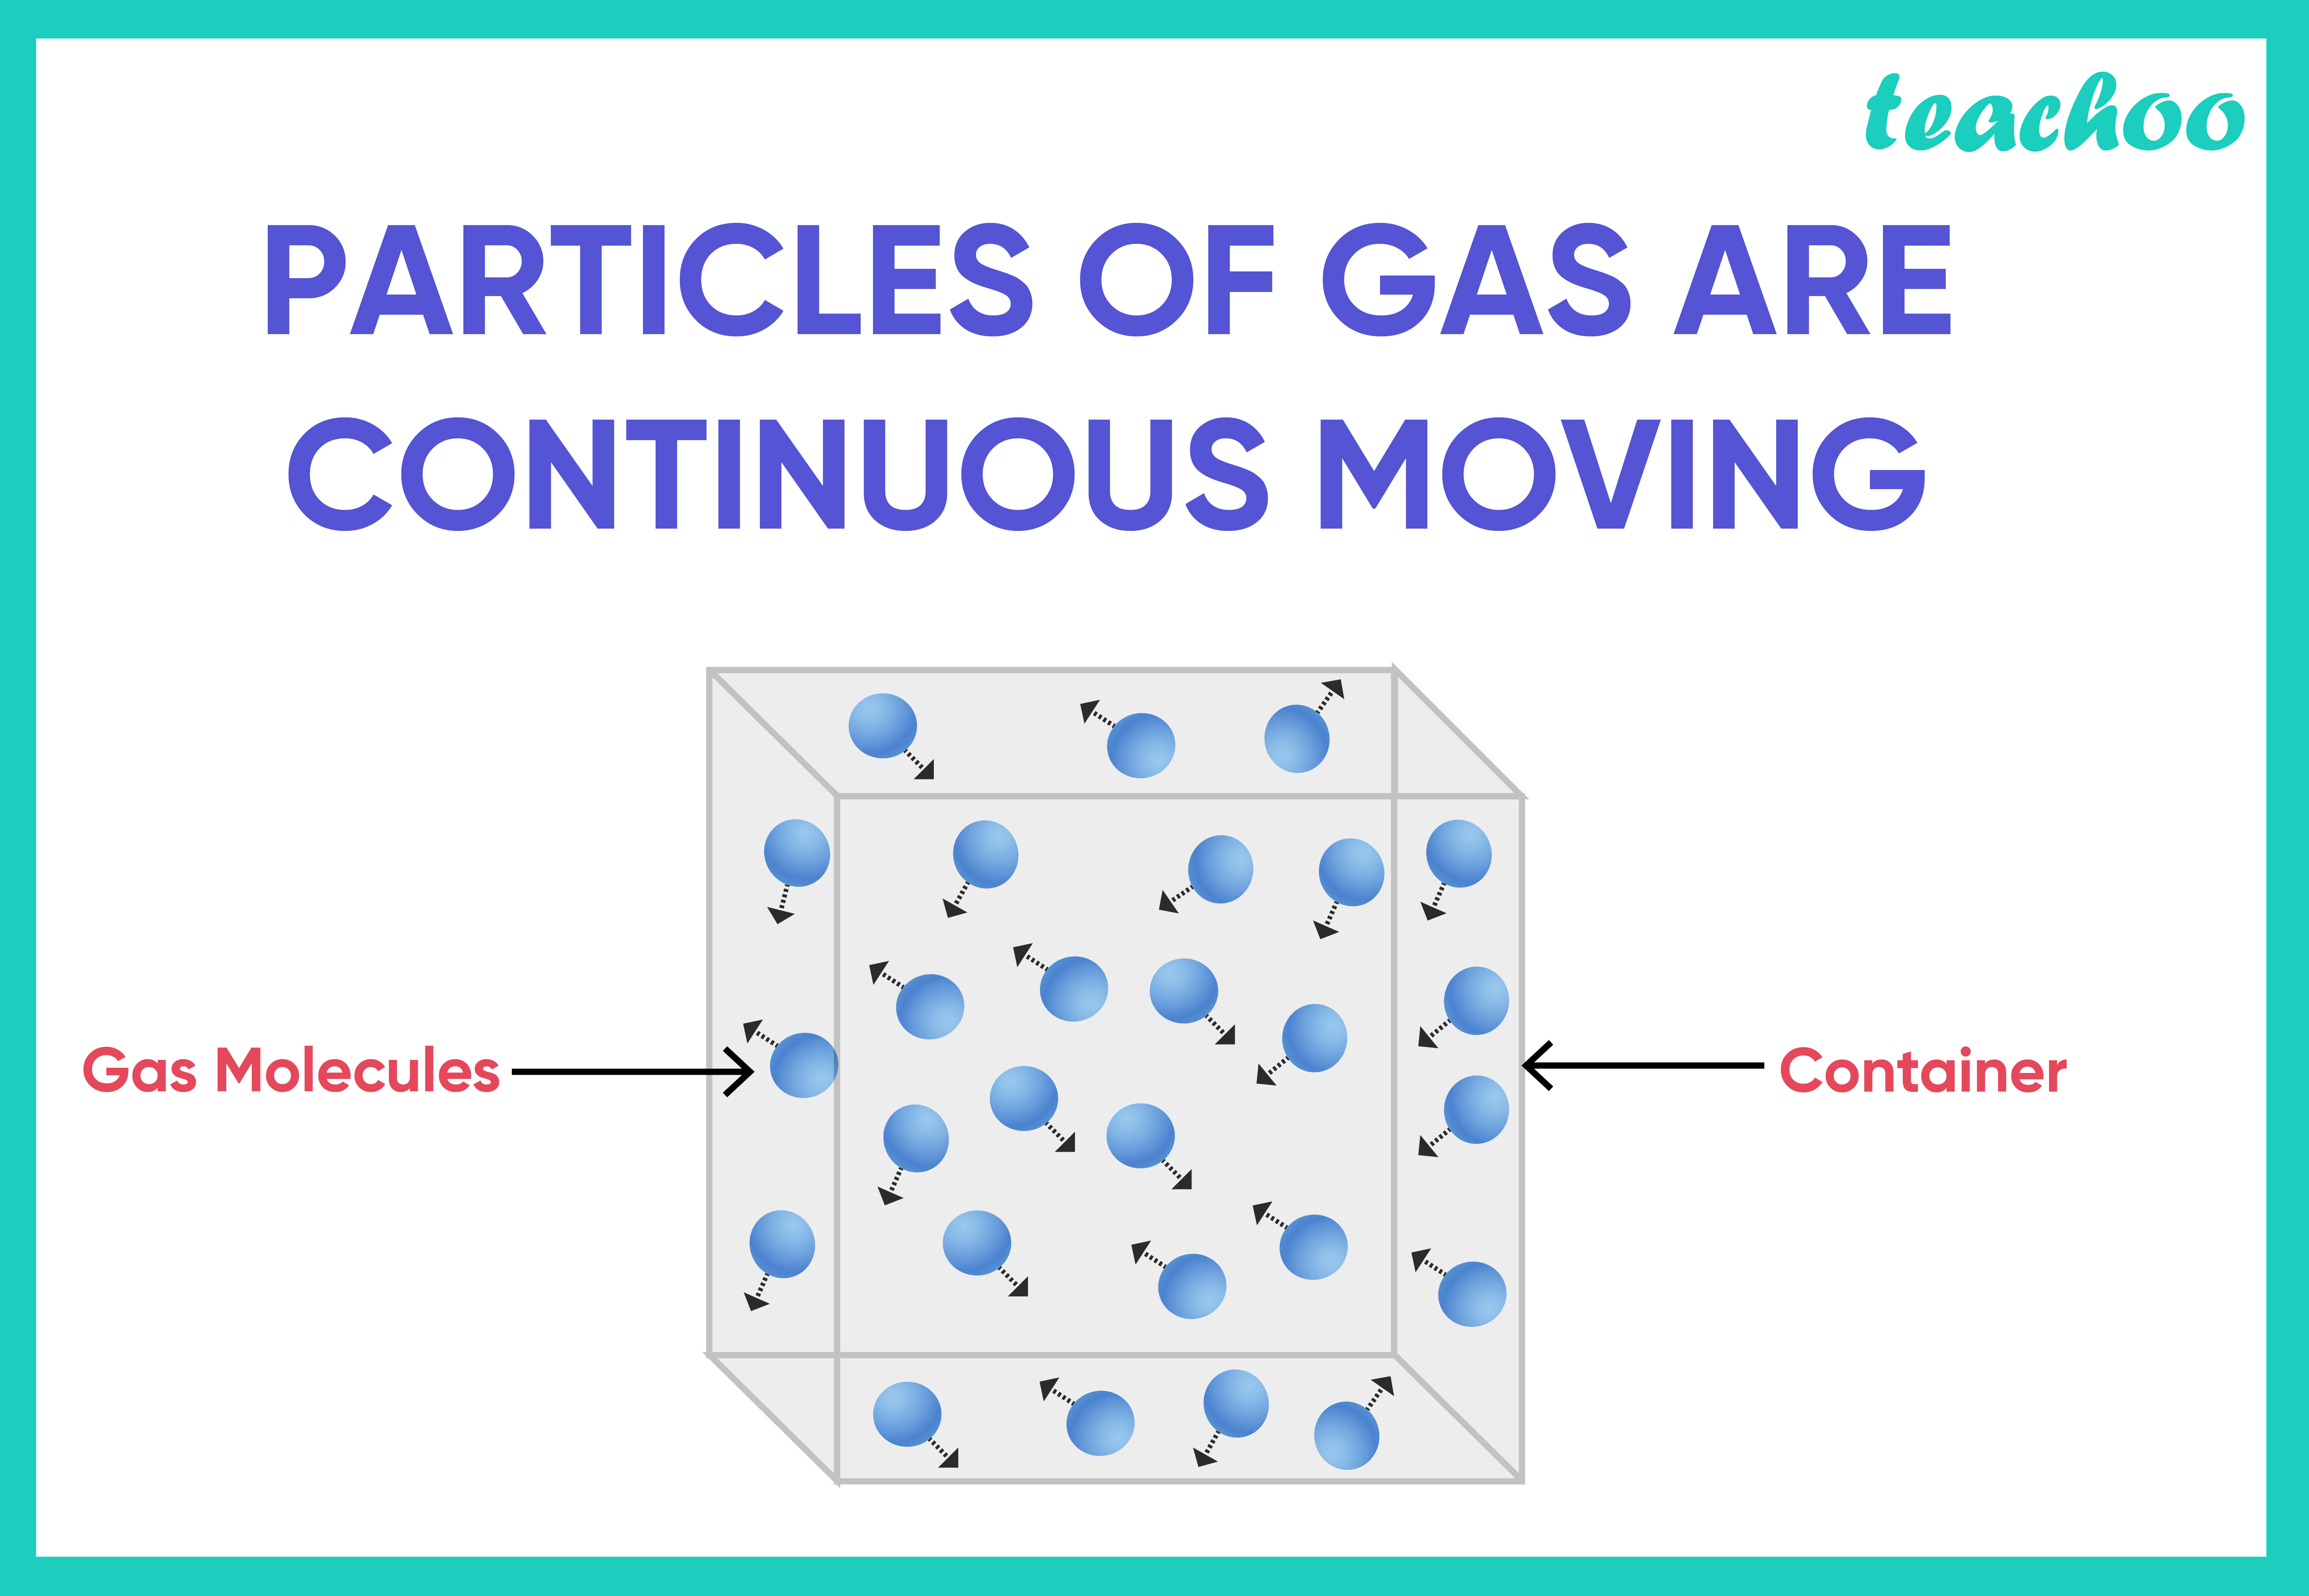 Particles of Gas are in continuously Moving-Teachoo.jpg